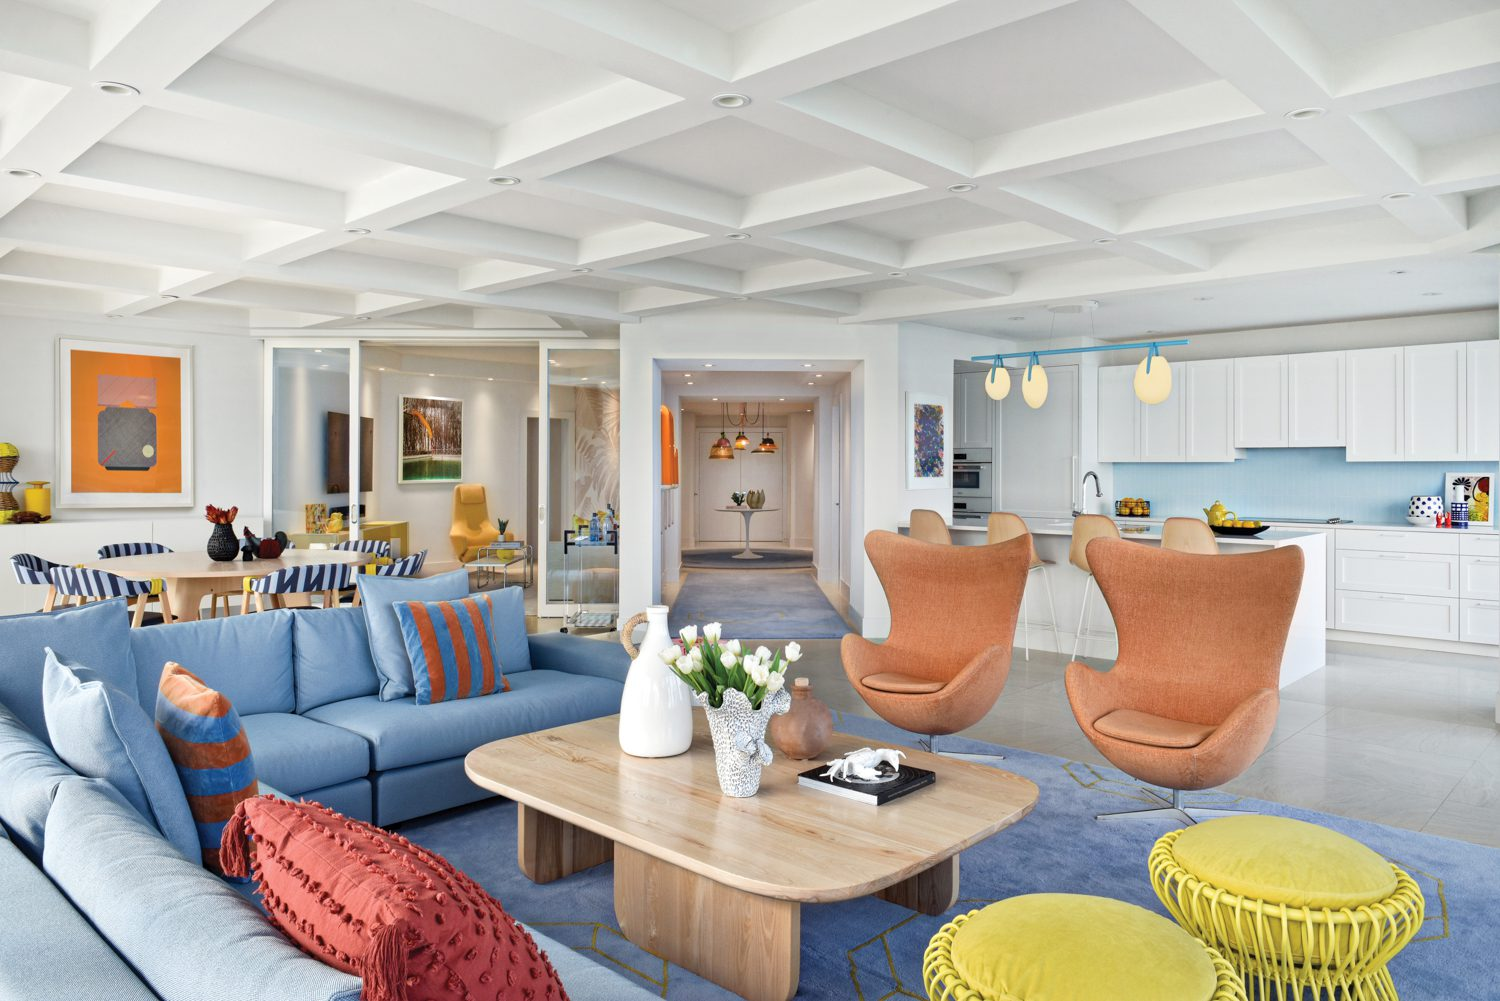 Viñas designed TriBecCa, the wool rug that anchors the living area seating group, which is serviced by a custom bleached-ash coffee table and Ultrasuede-covered Taiko poufs by Tomoko Mizu.